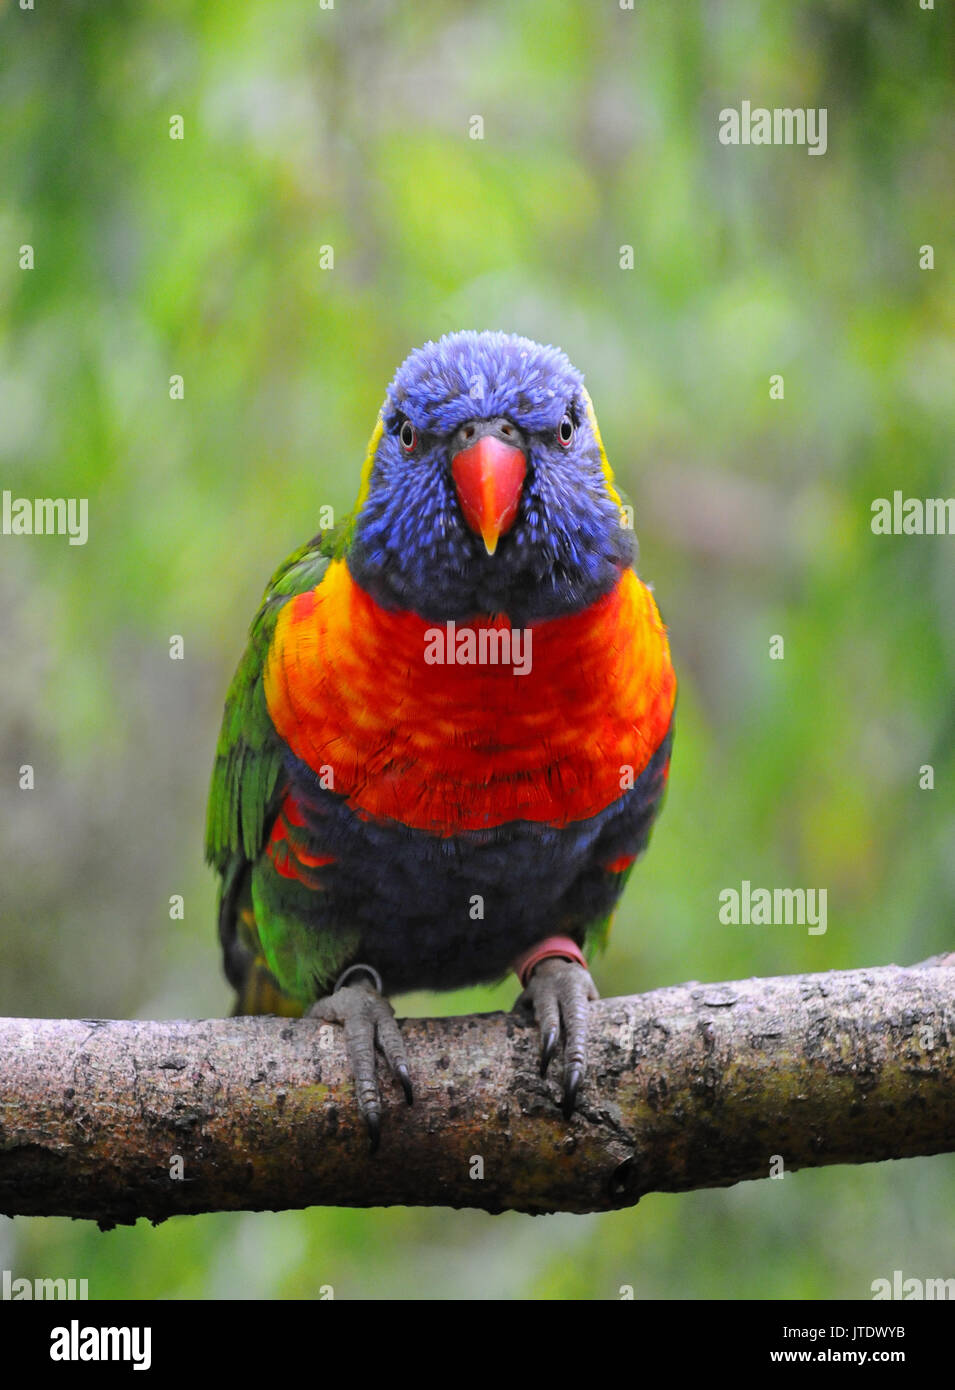 A colorful rainbow lorikeet parrot perched on a branch - Stock Image